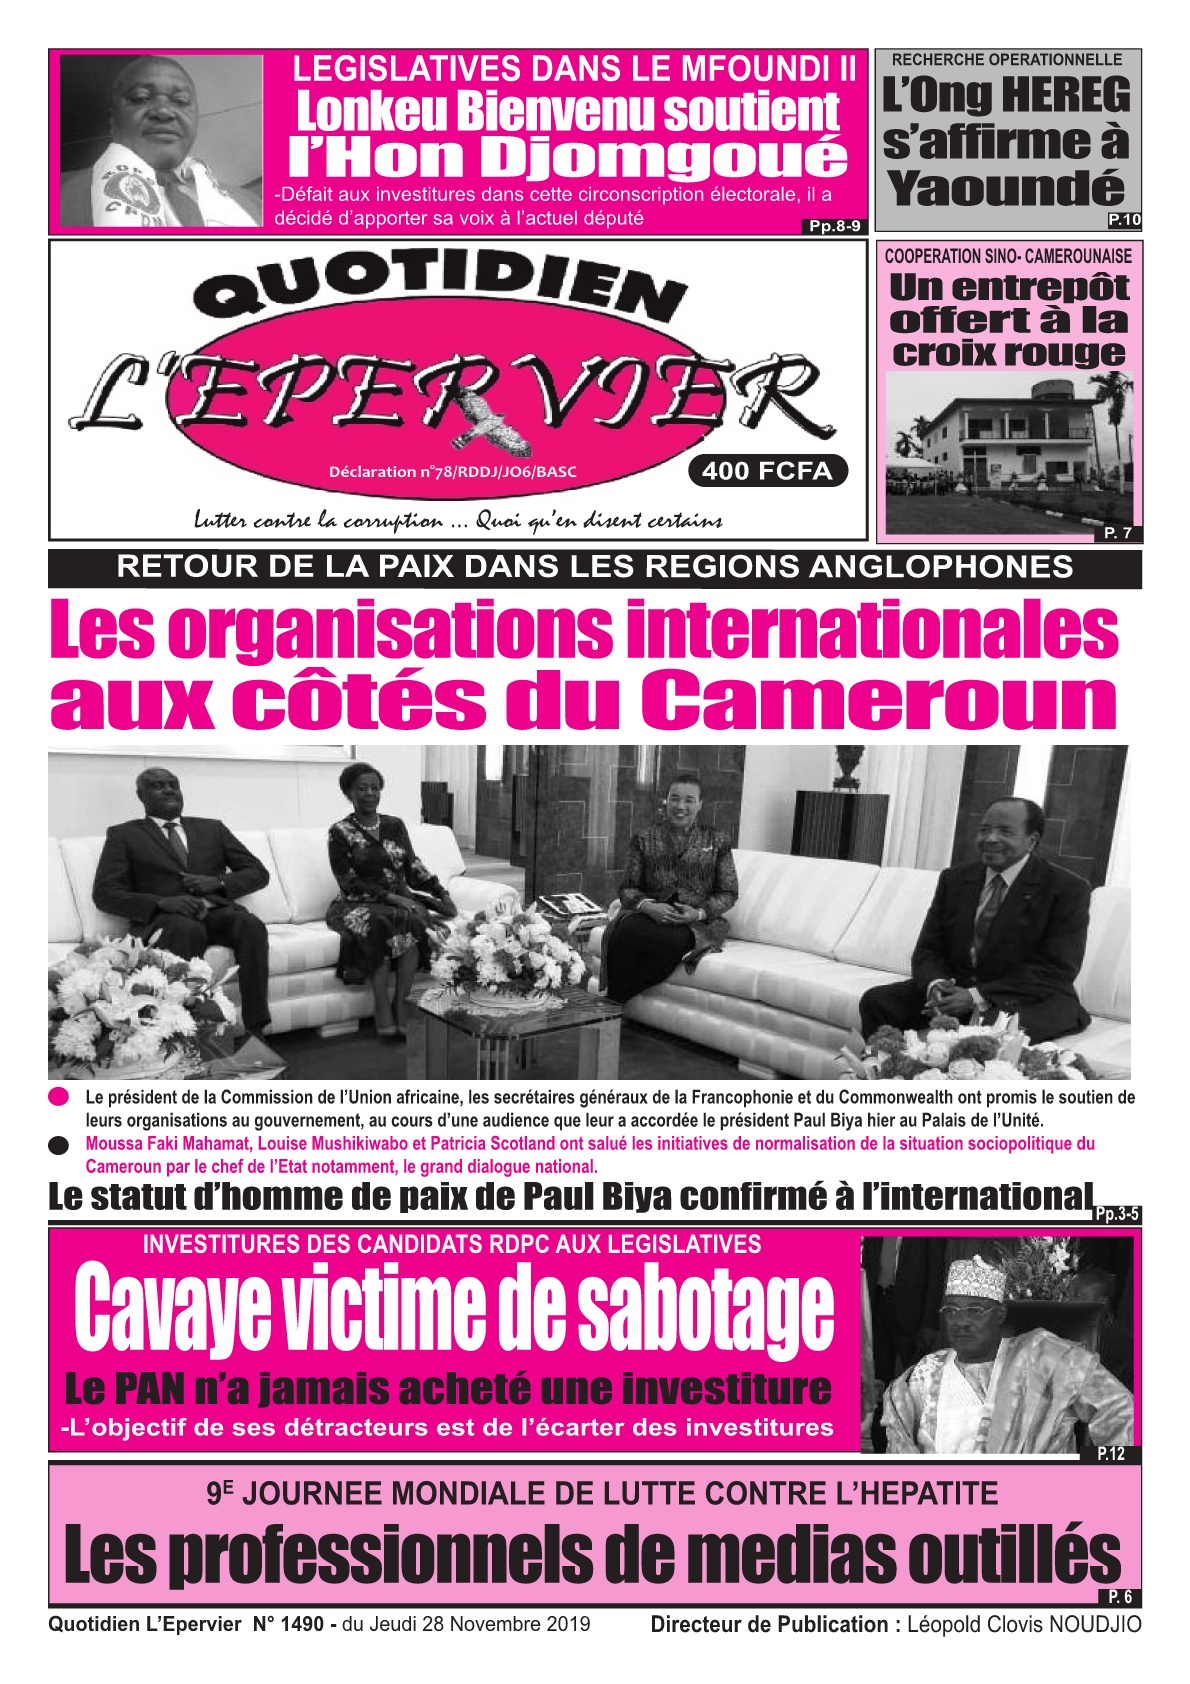 L'Epervier - 28/11/2019